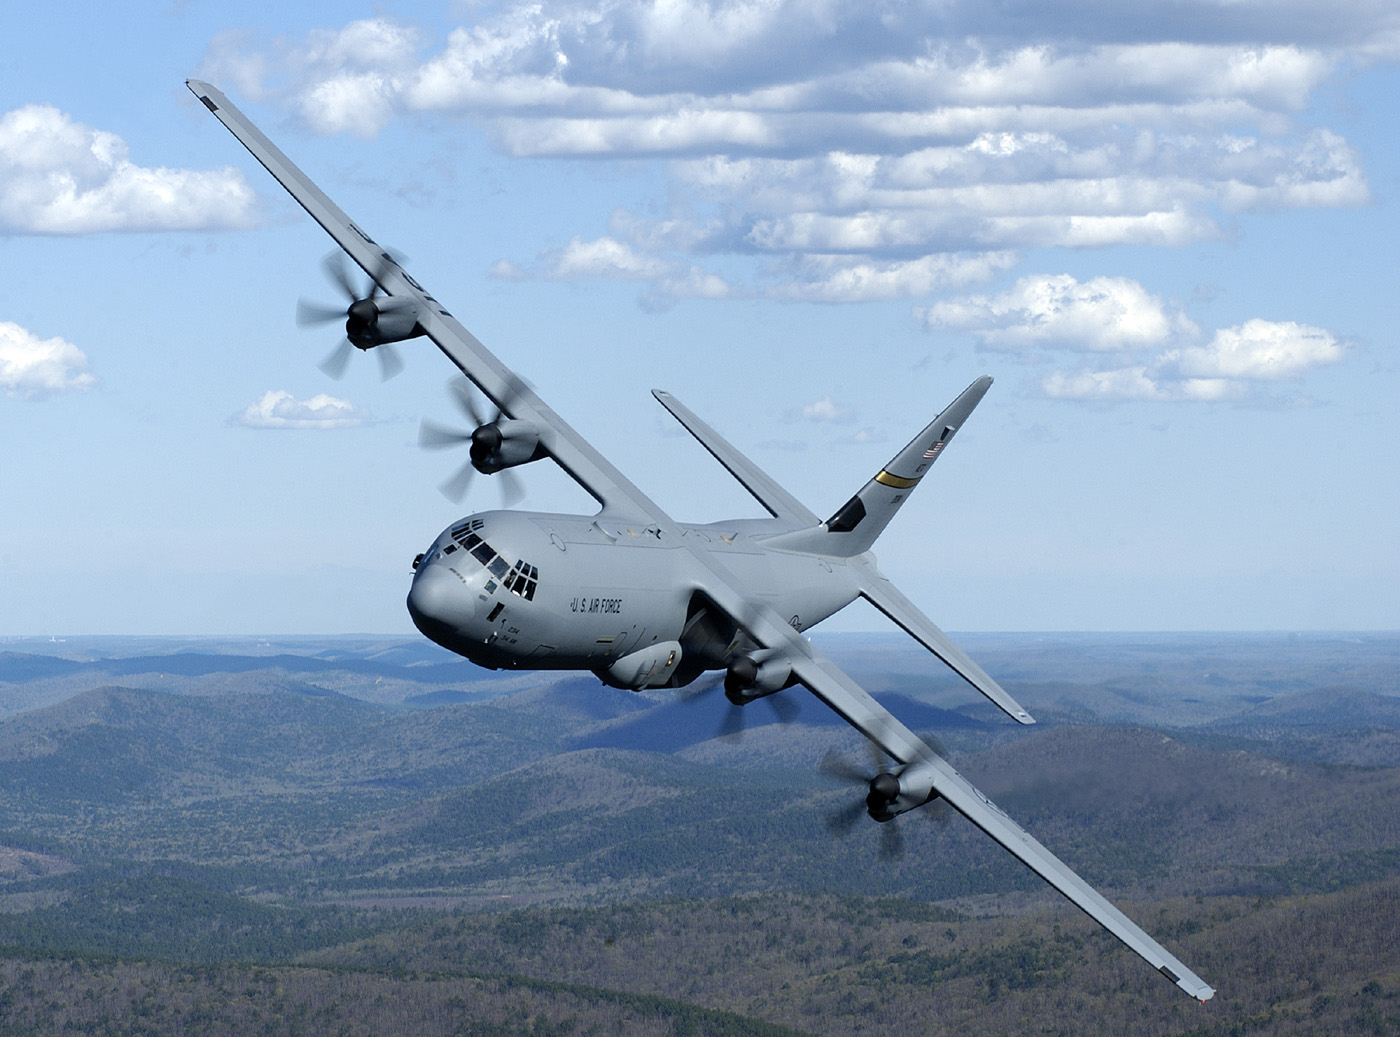 deadly lockheed martin c130 hercules  army and weapons